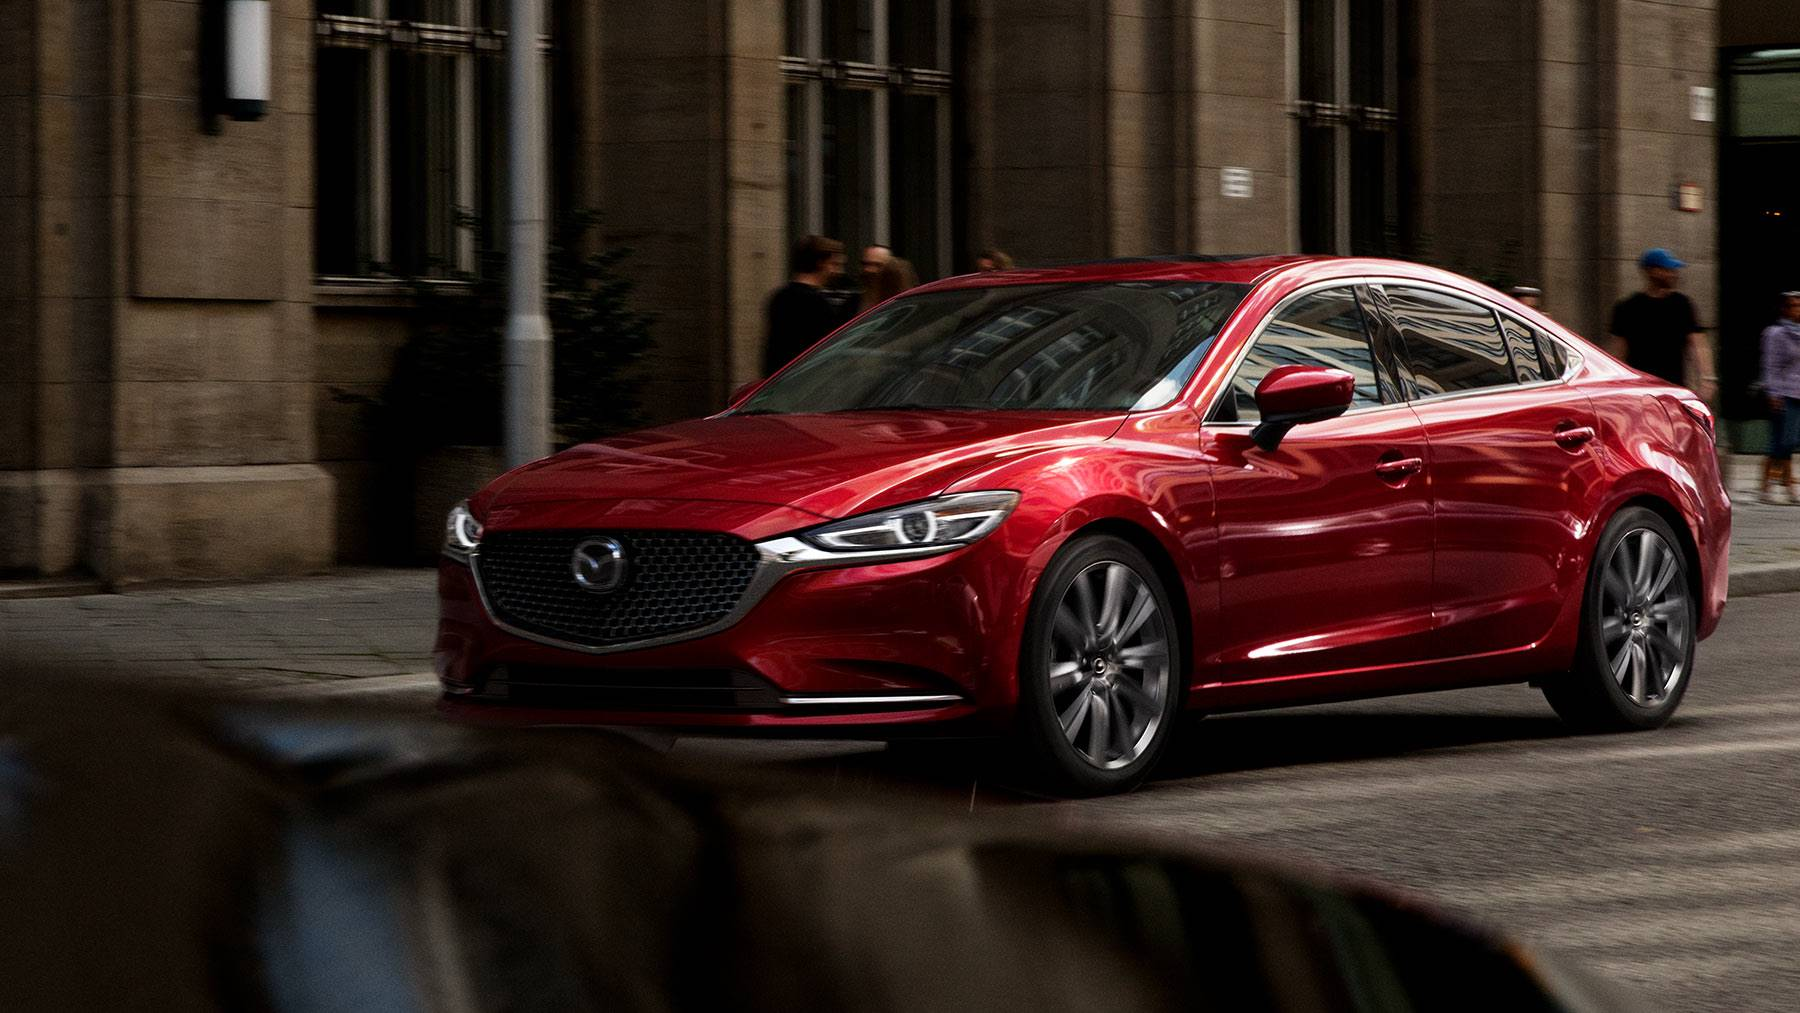 2018 Mazda6 Leasing in Sacramento, CA